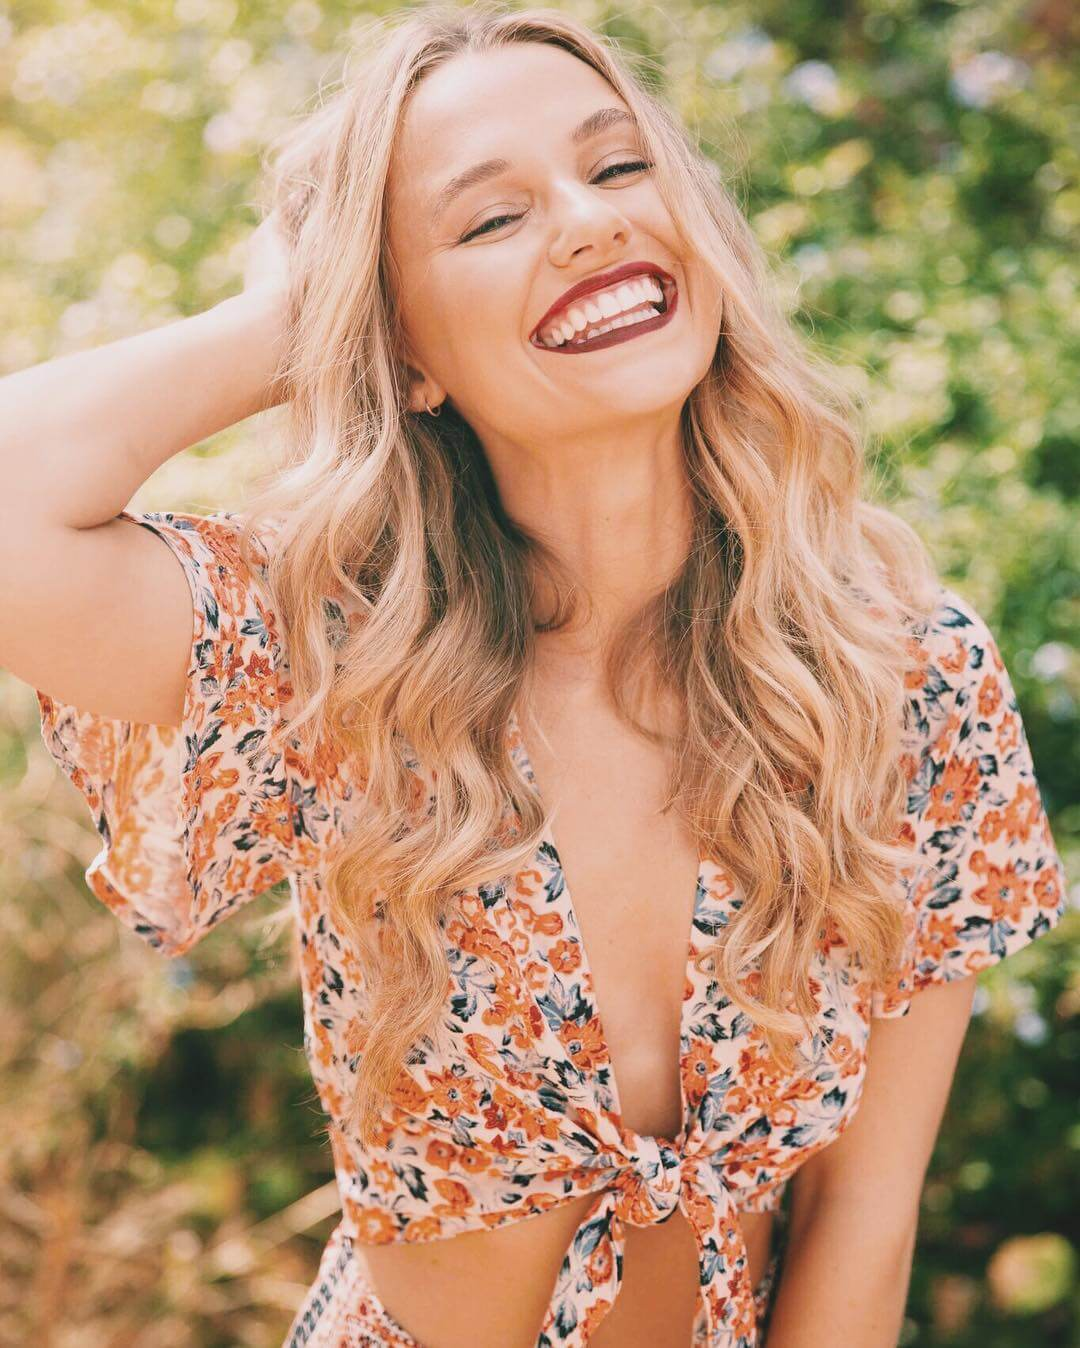 49 hot photos of Madison Iseman will light a fan inside you